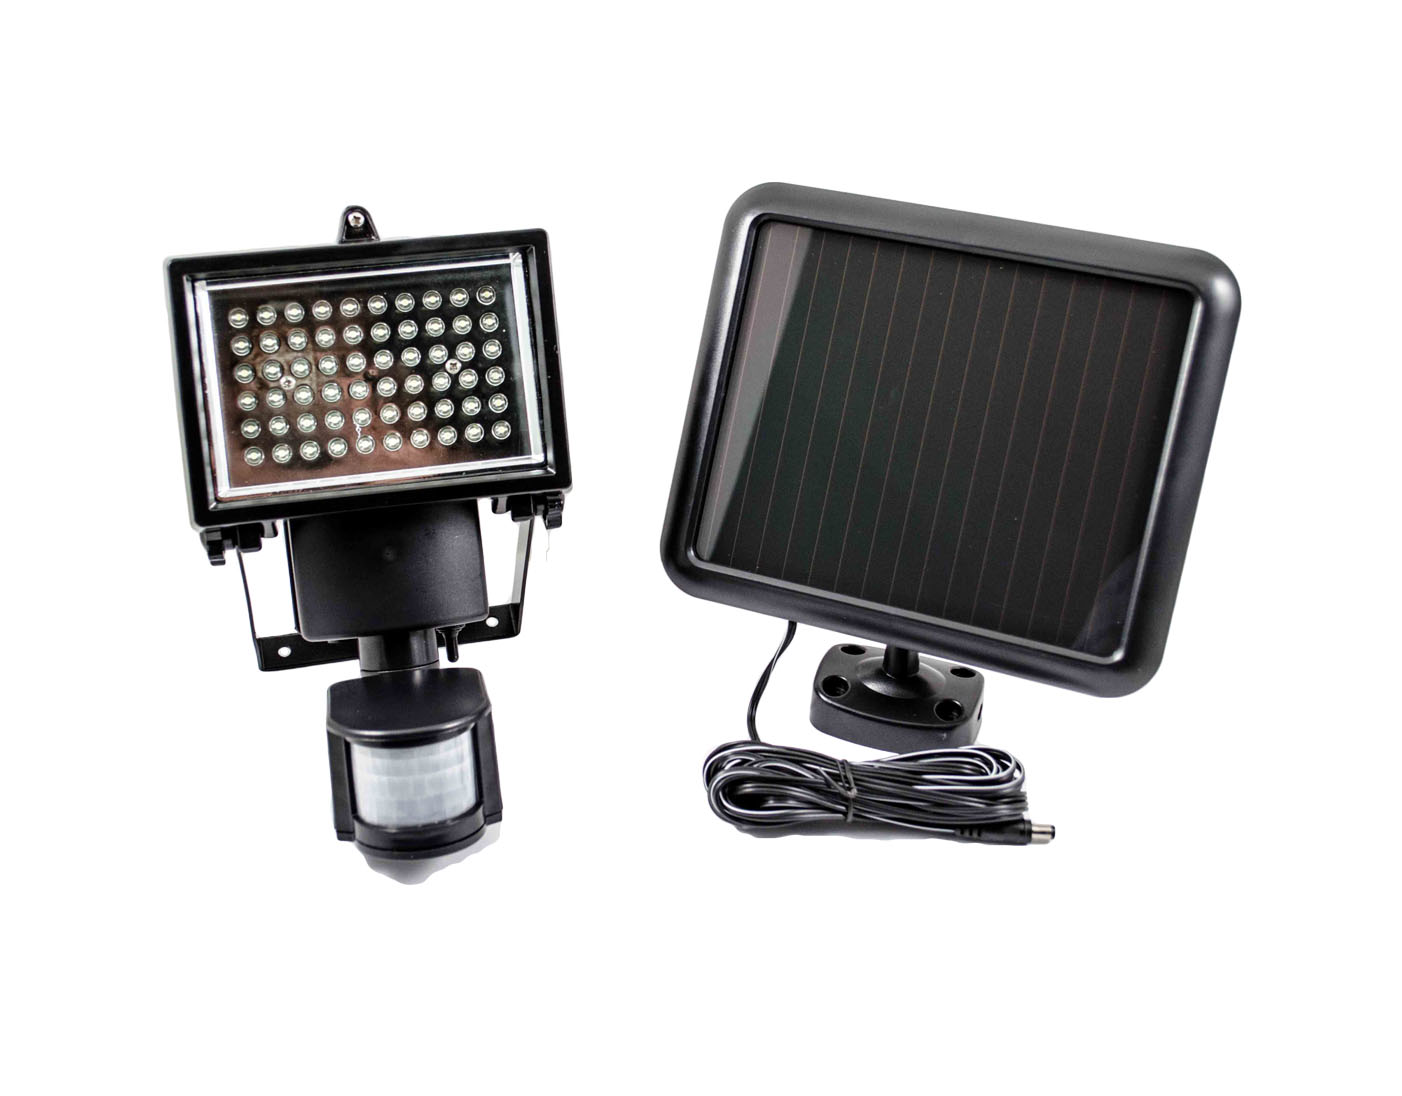 60 led solar powered security motion light detector ebay. Black Bedroom Furniture Sets. Home Design Ideas